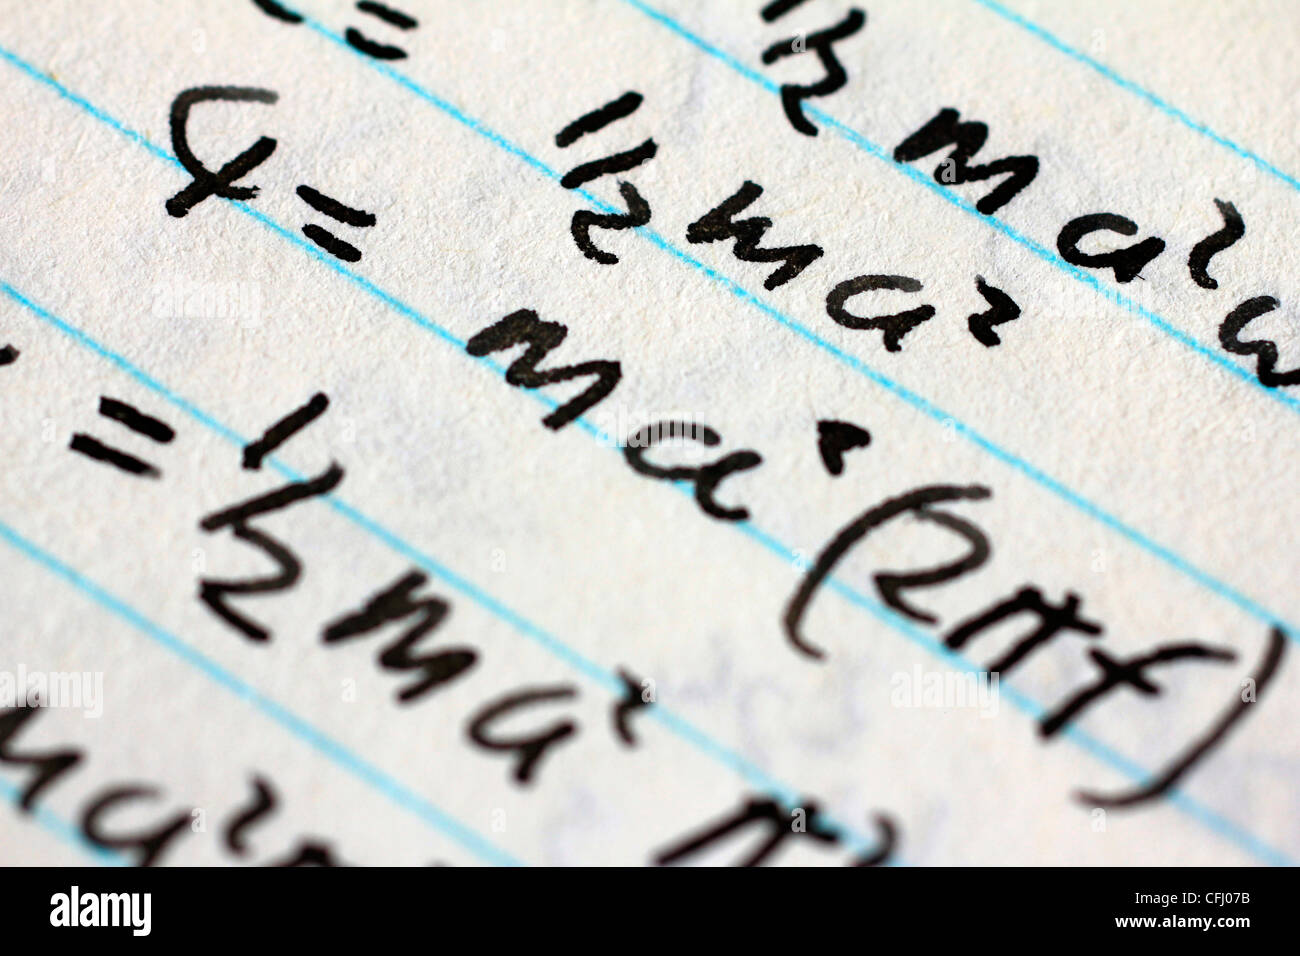 Mathematical equations on a white piece of paper Stock Photo